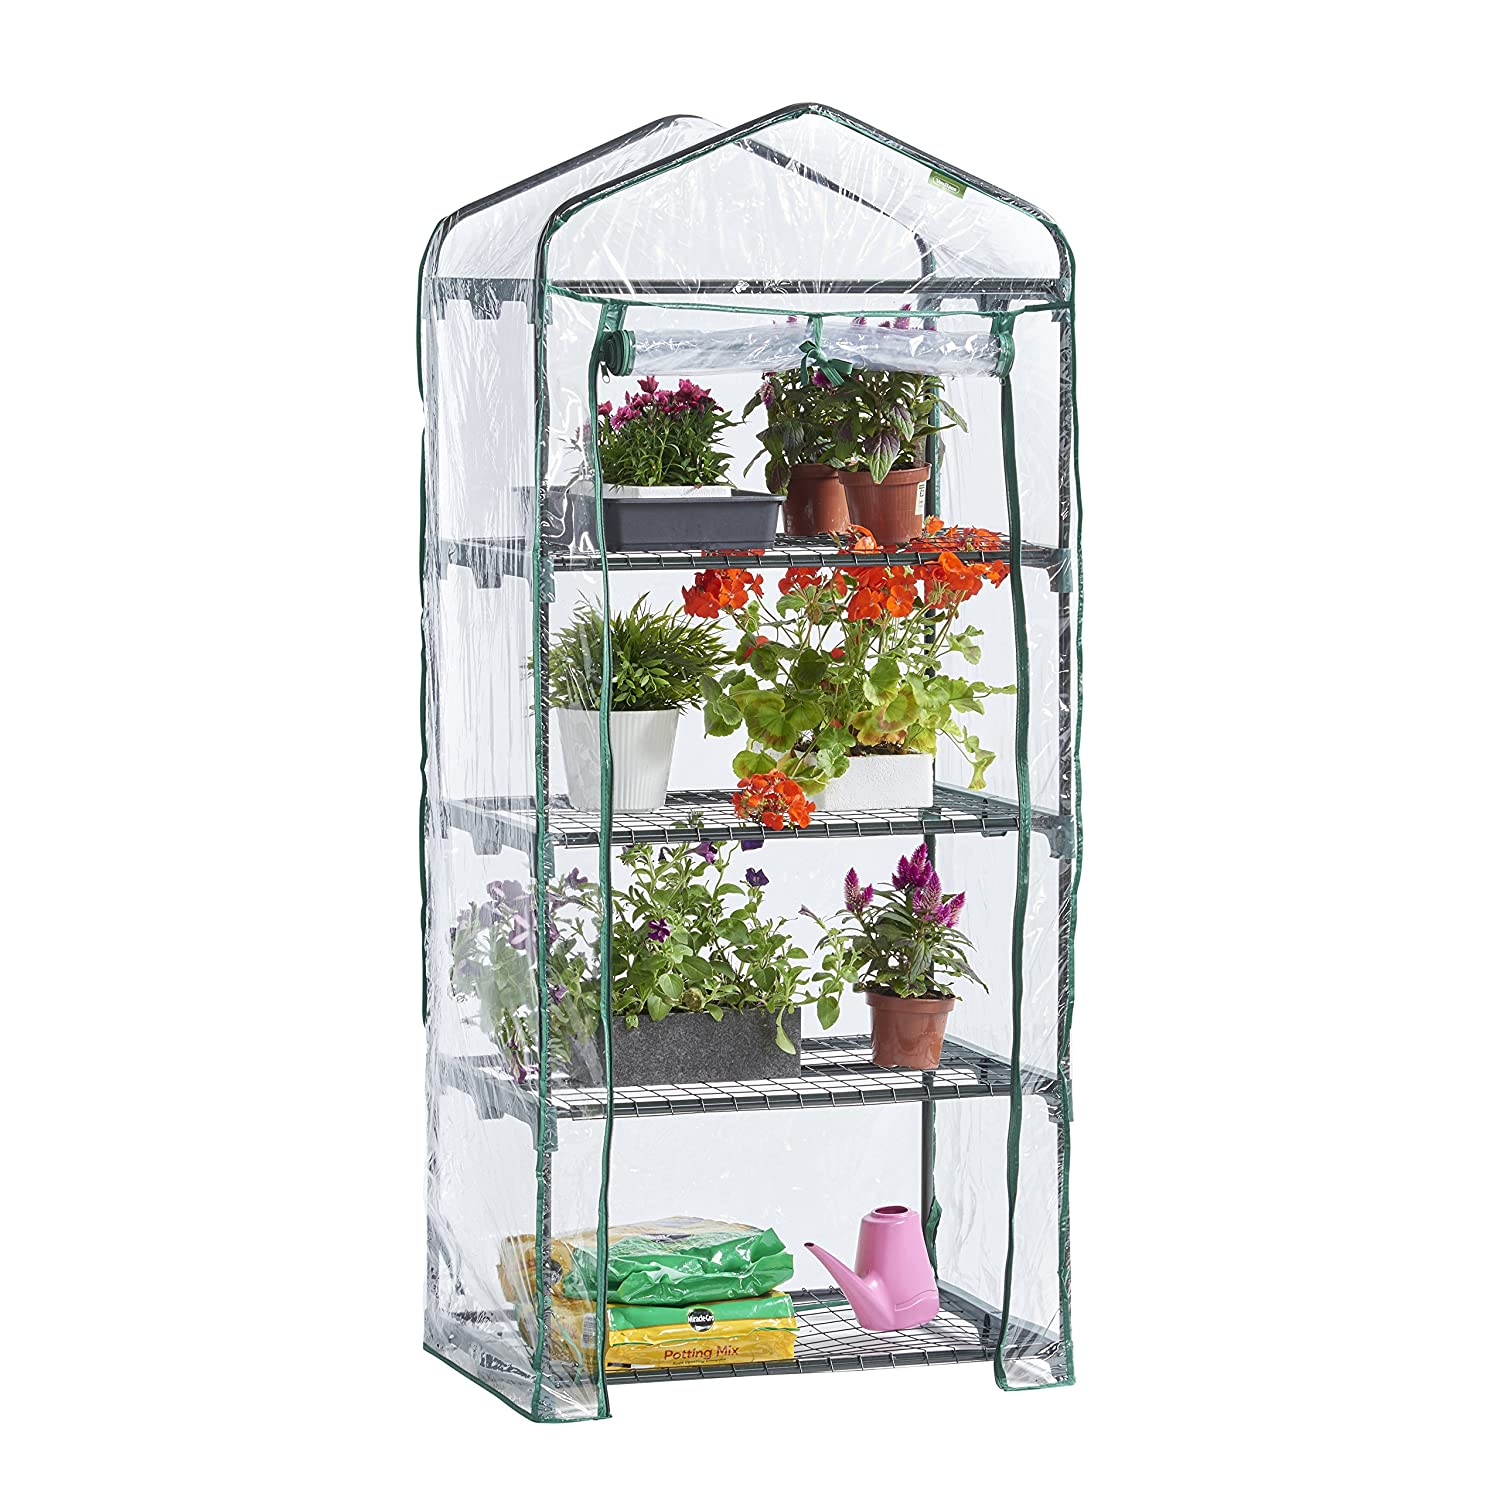 VonHaus VD-2664GT 63 x 28 x 20 inches 4 Tier Portable Mini Compact Greenhouse with Clear PVC Cover-Unit 6, Translucent